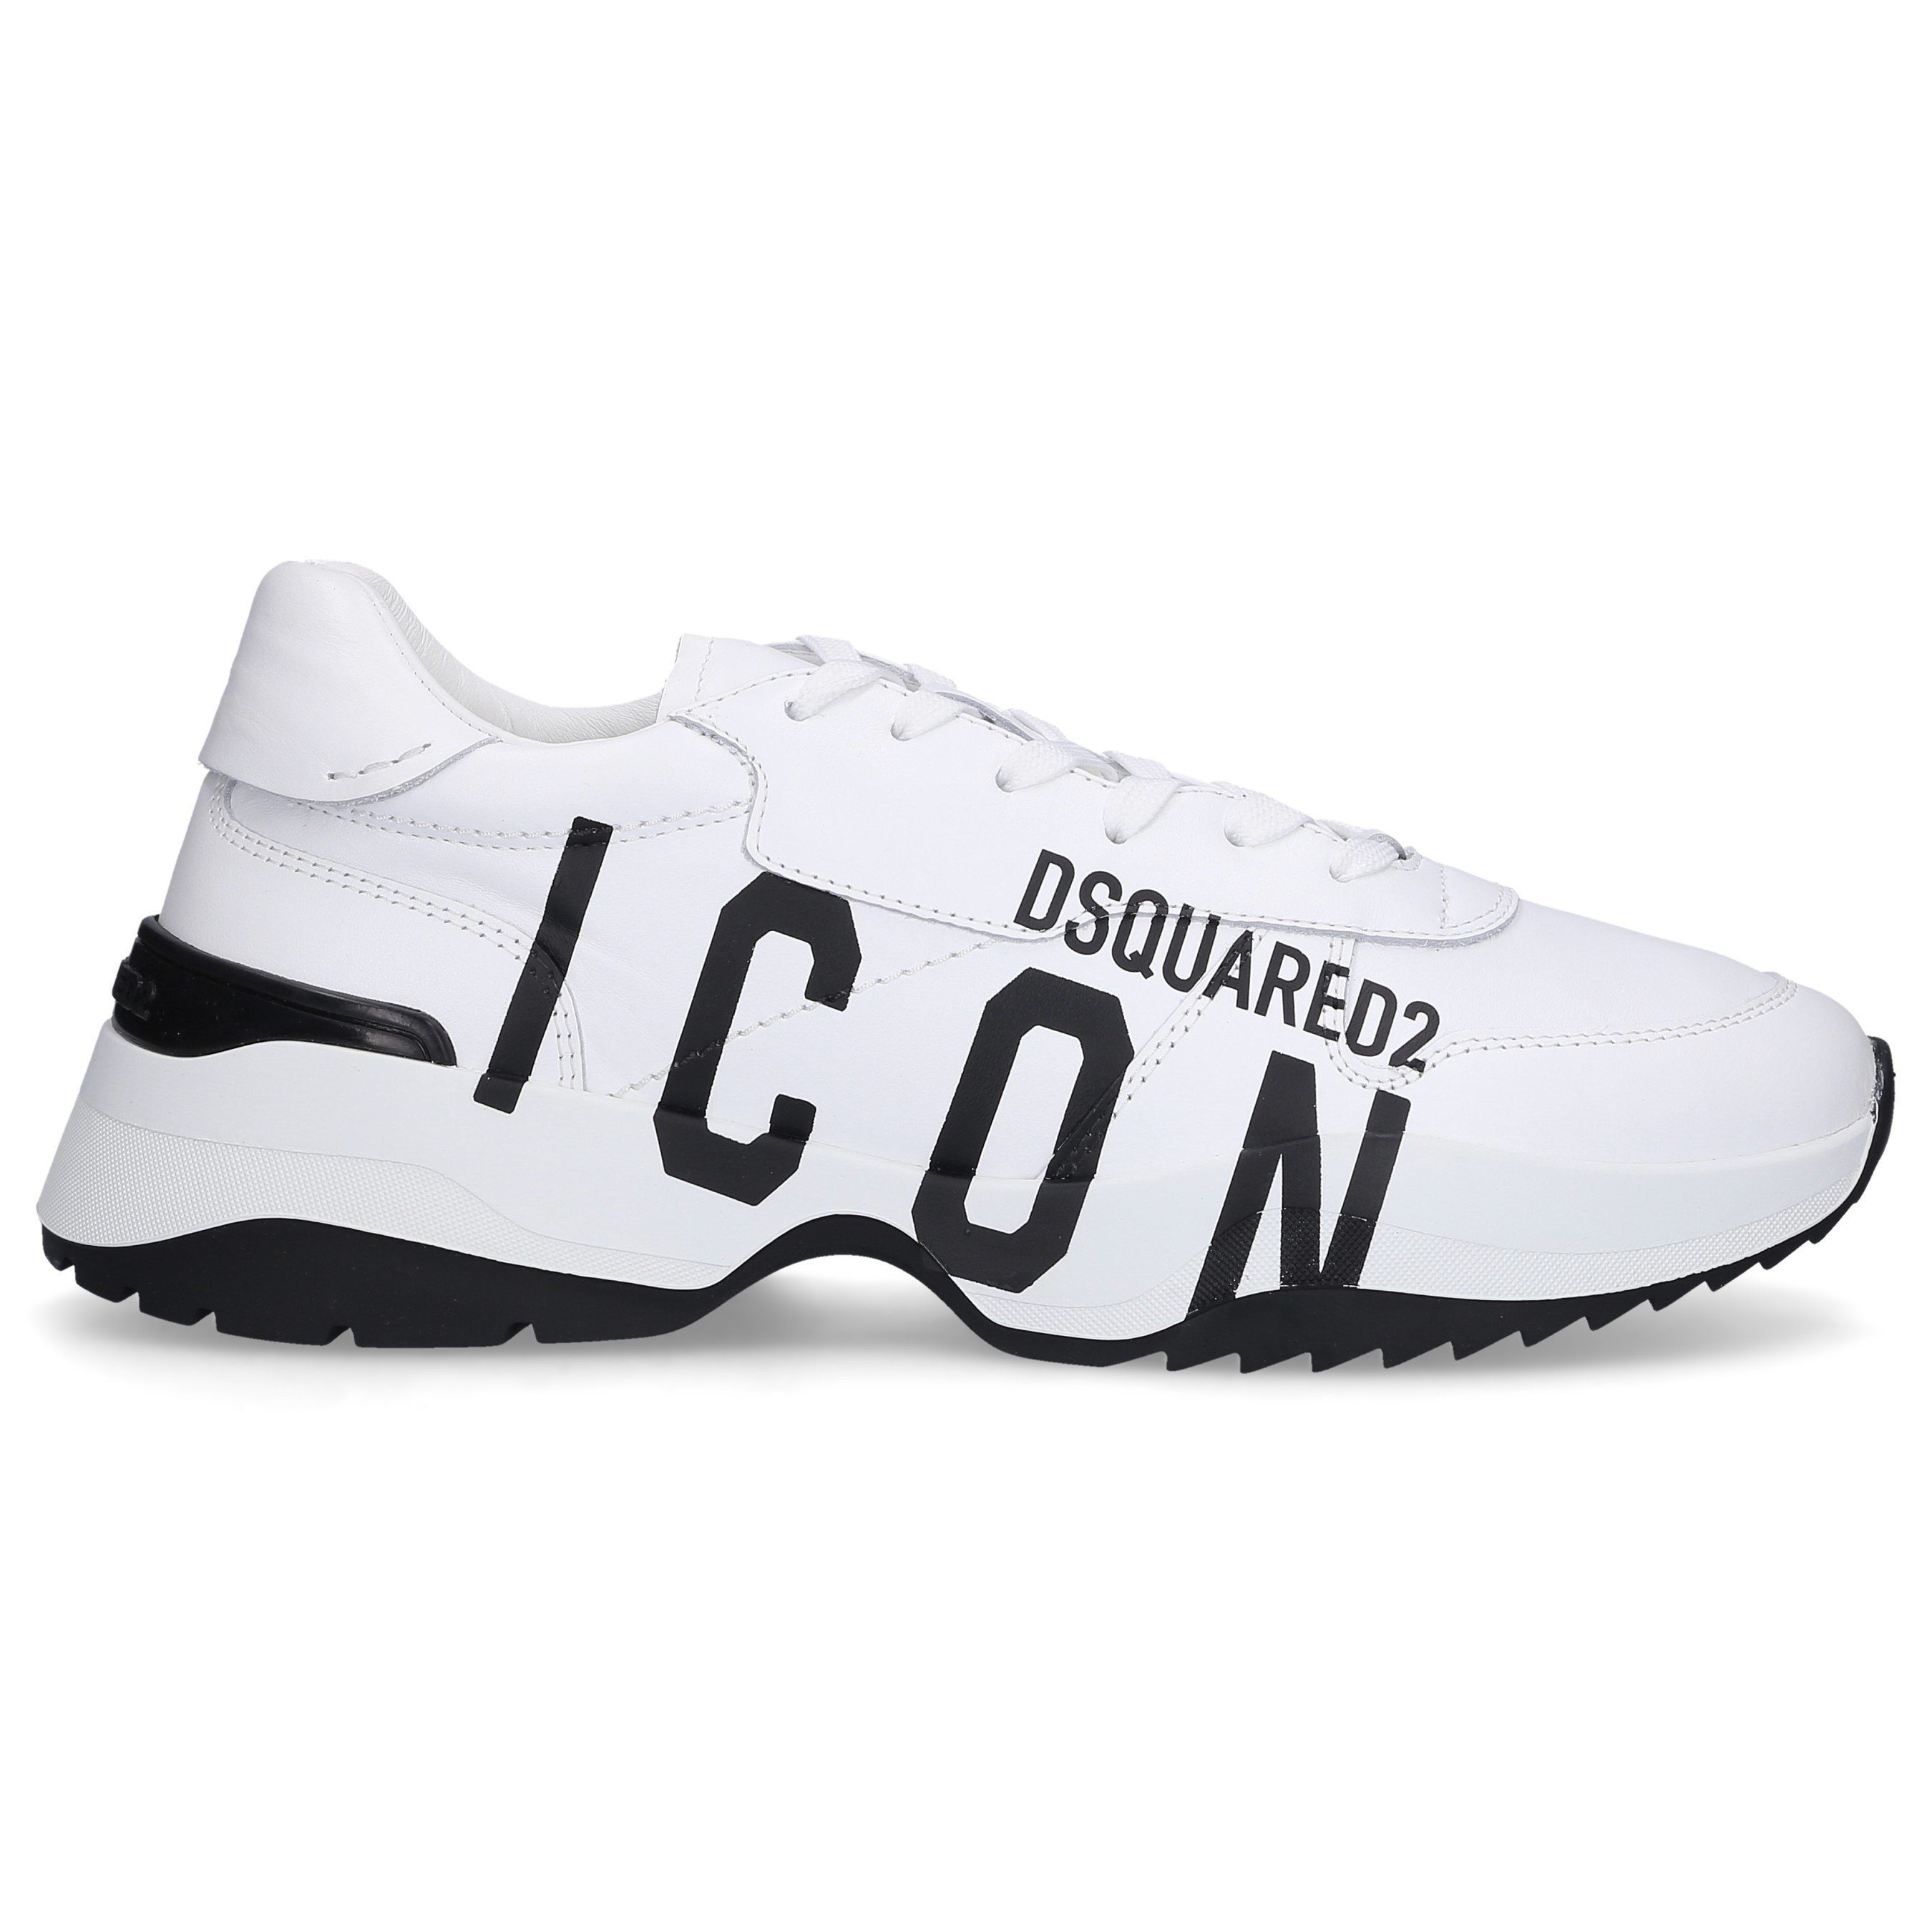 Dsquared2 LOW-TOP SNEAKERS D24 CALFSKIN LOGO WHITE